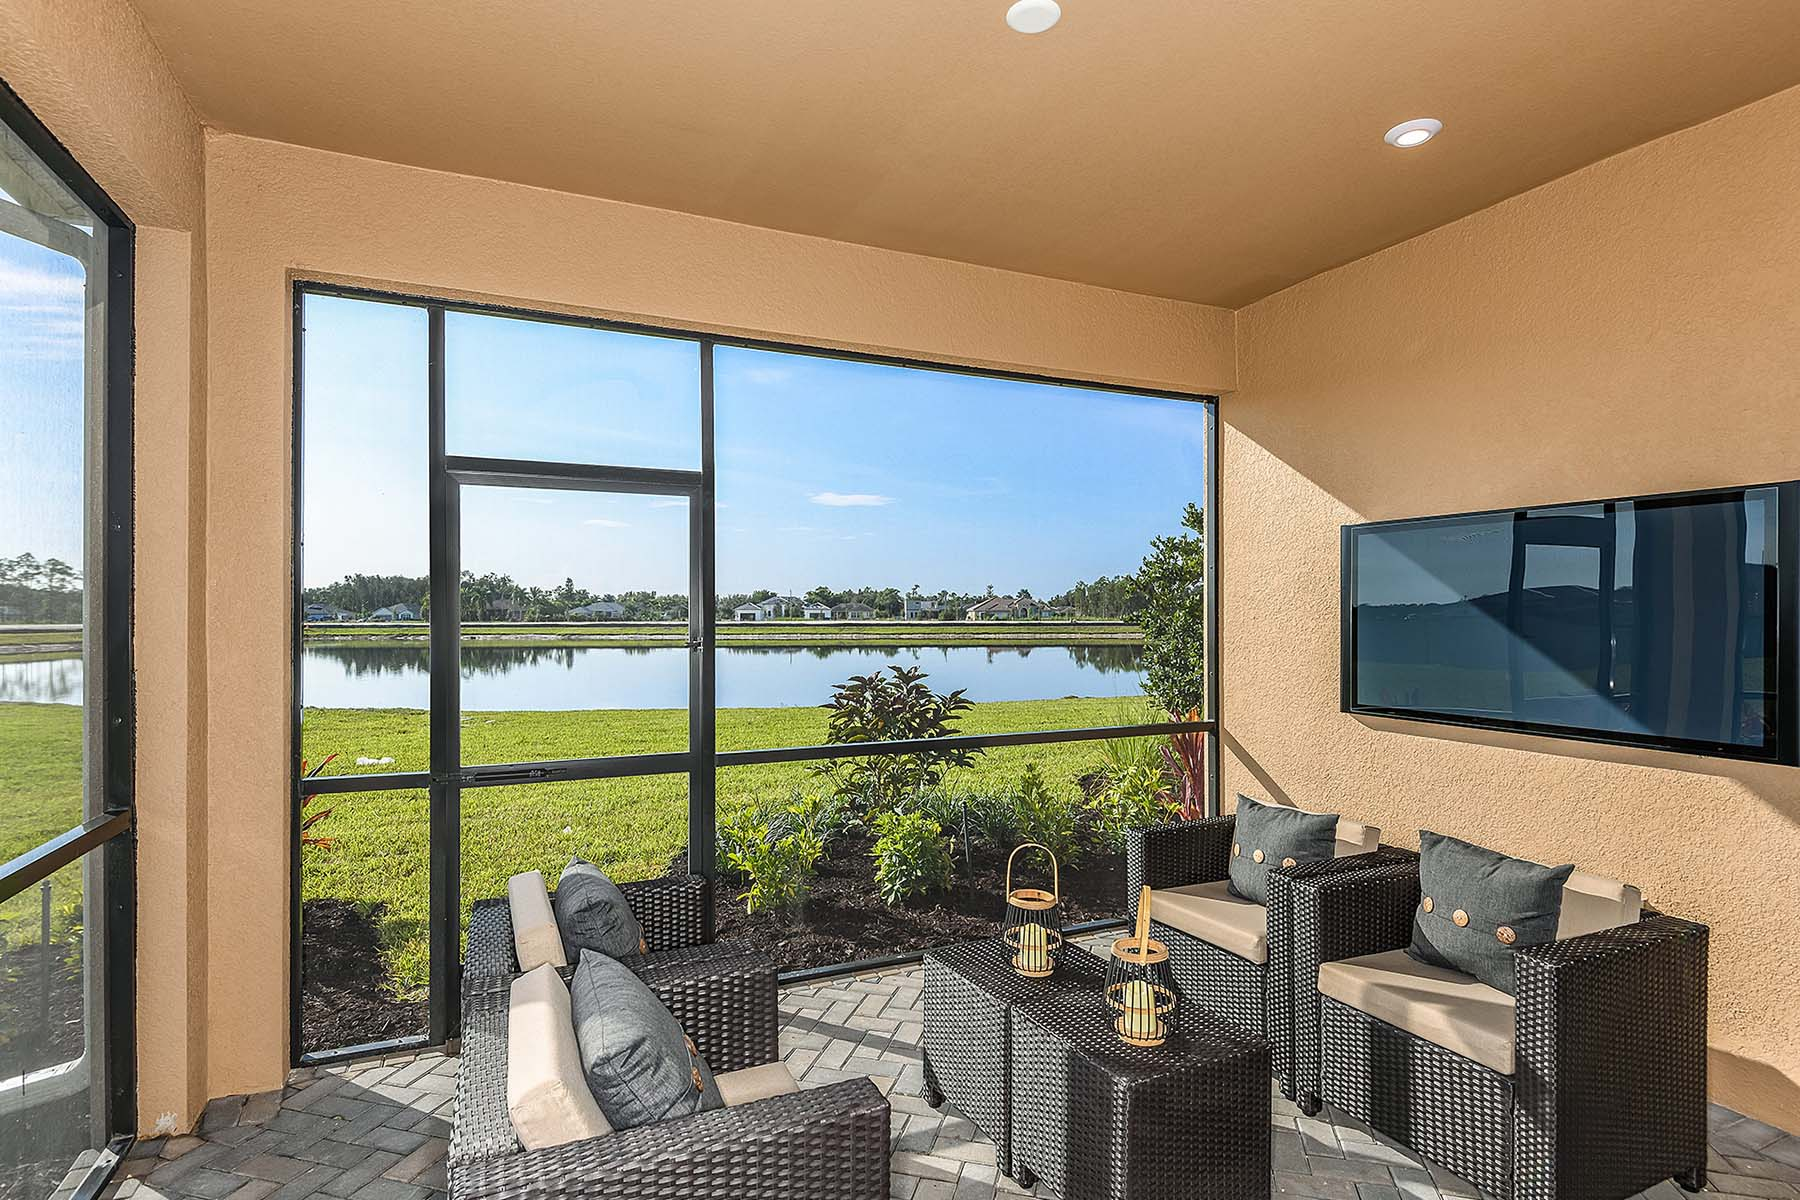 Largo Plan Patio at Bonavie Cove in Fort Myers Florida by Mattamy Homes